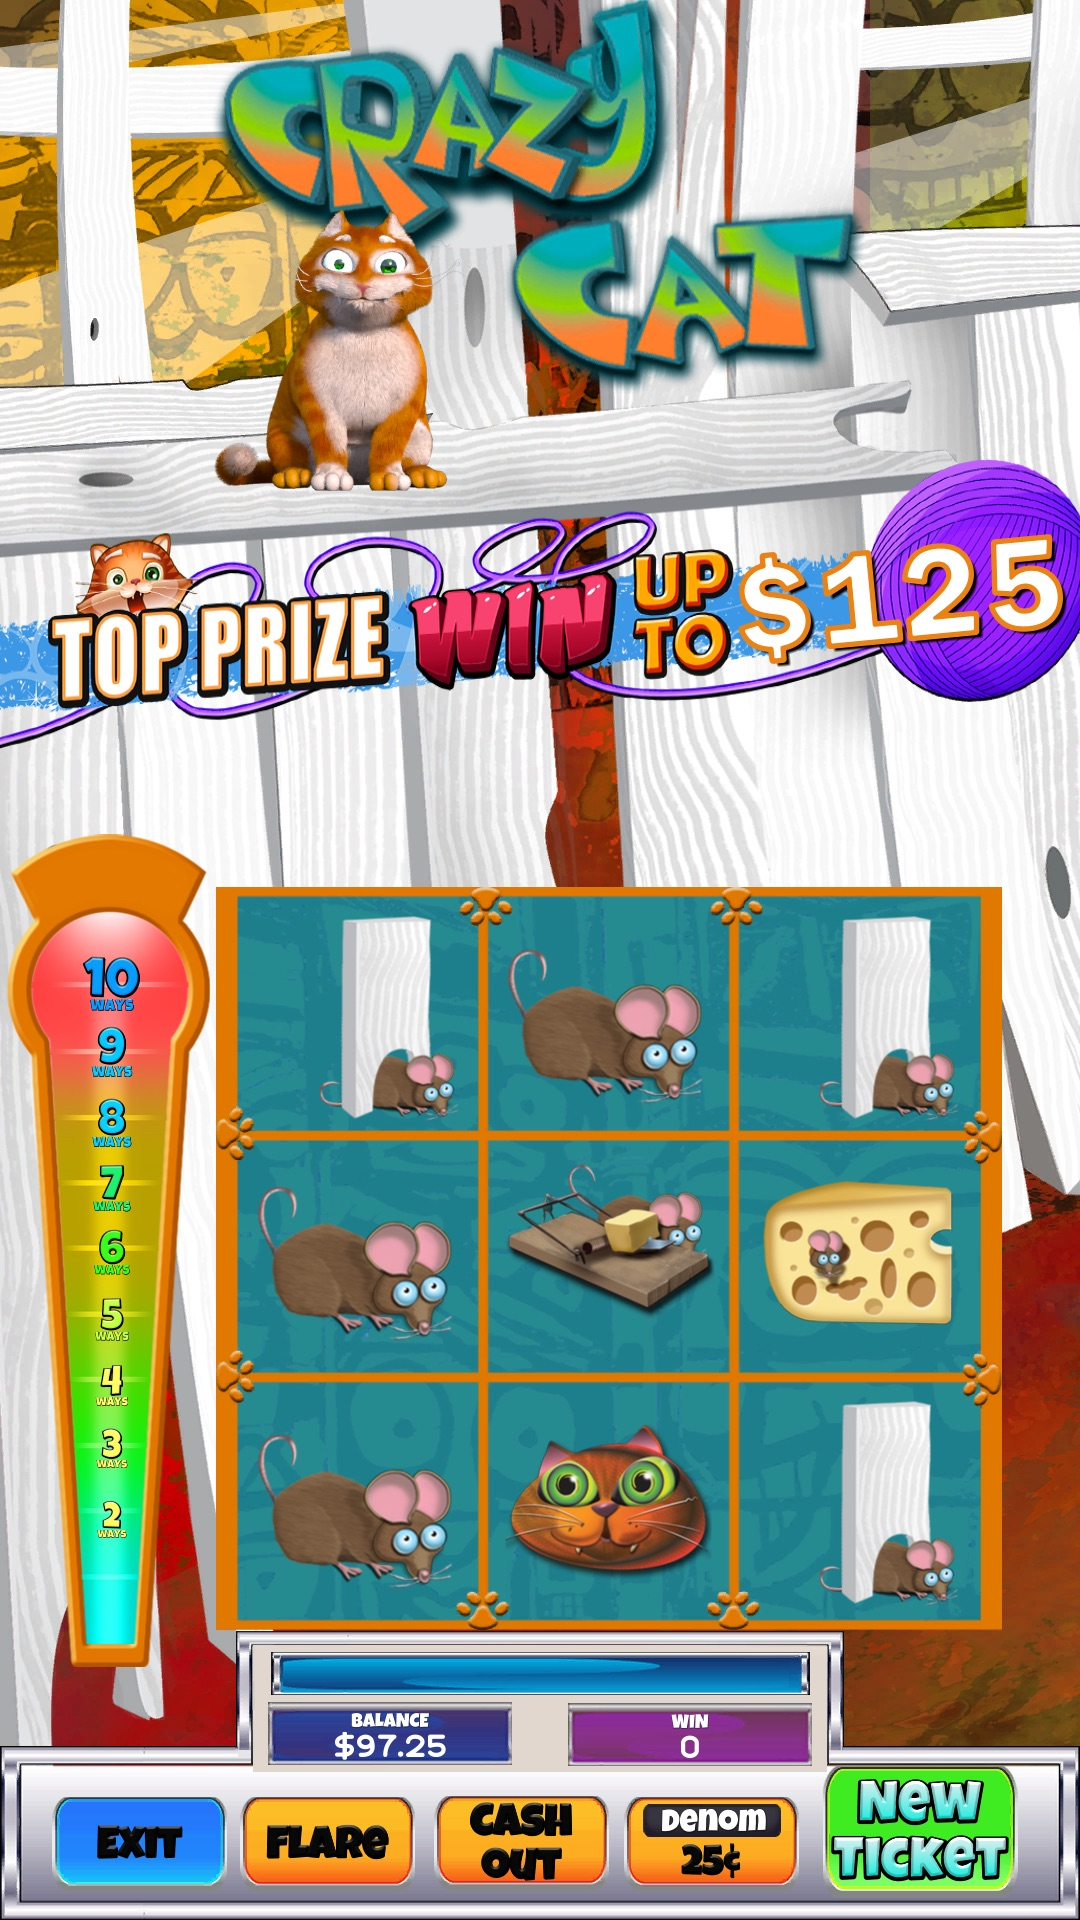 Crazy-cat-vertical-pull-tab-game-screen-shot